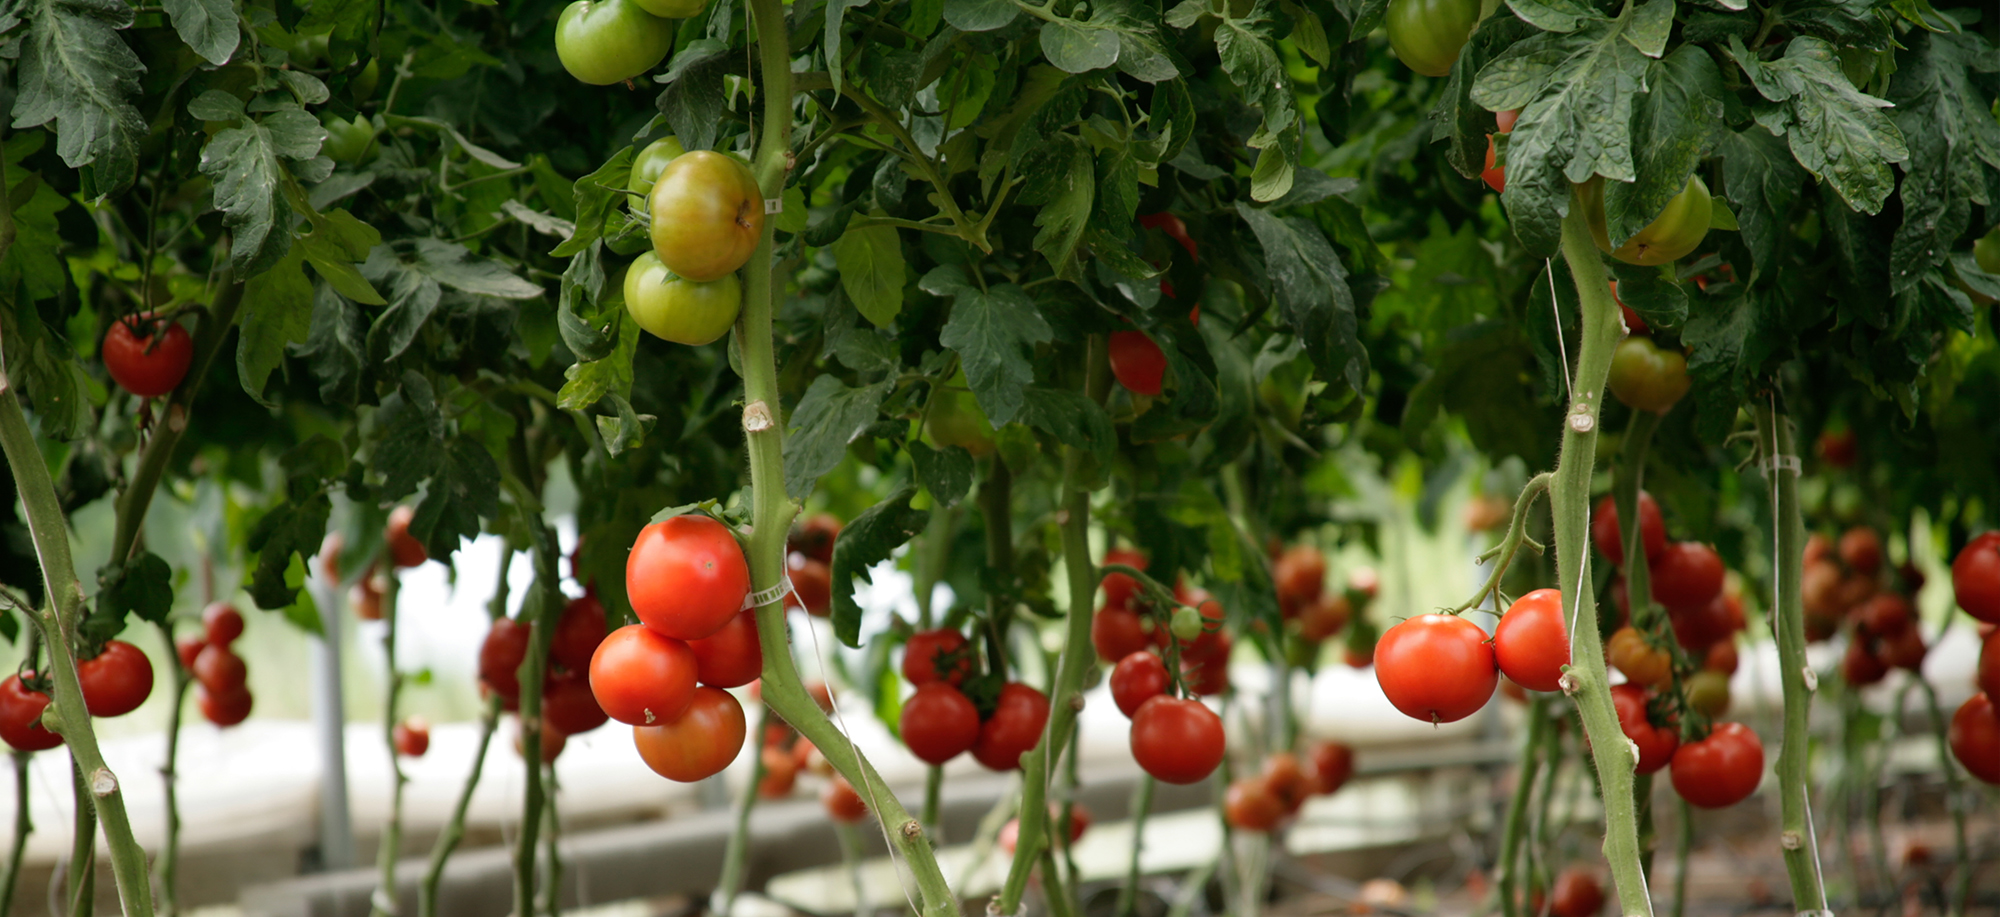 McEnroe's Organic Tomatoes Are Available from May through February